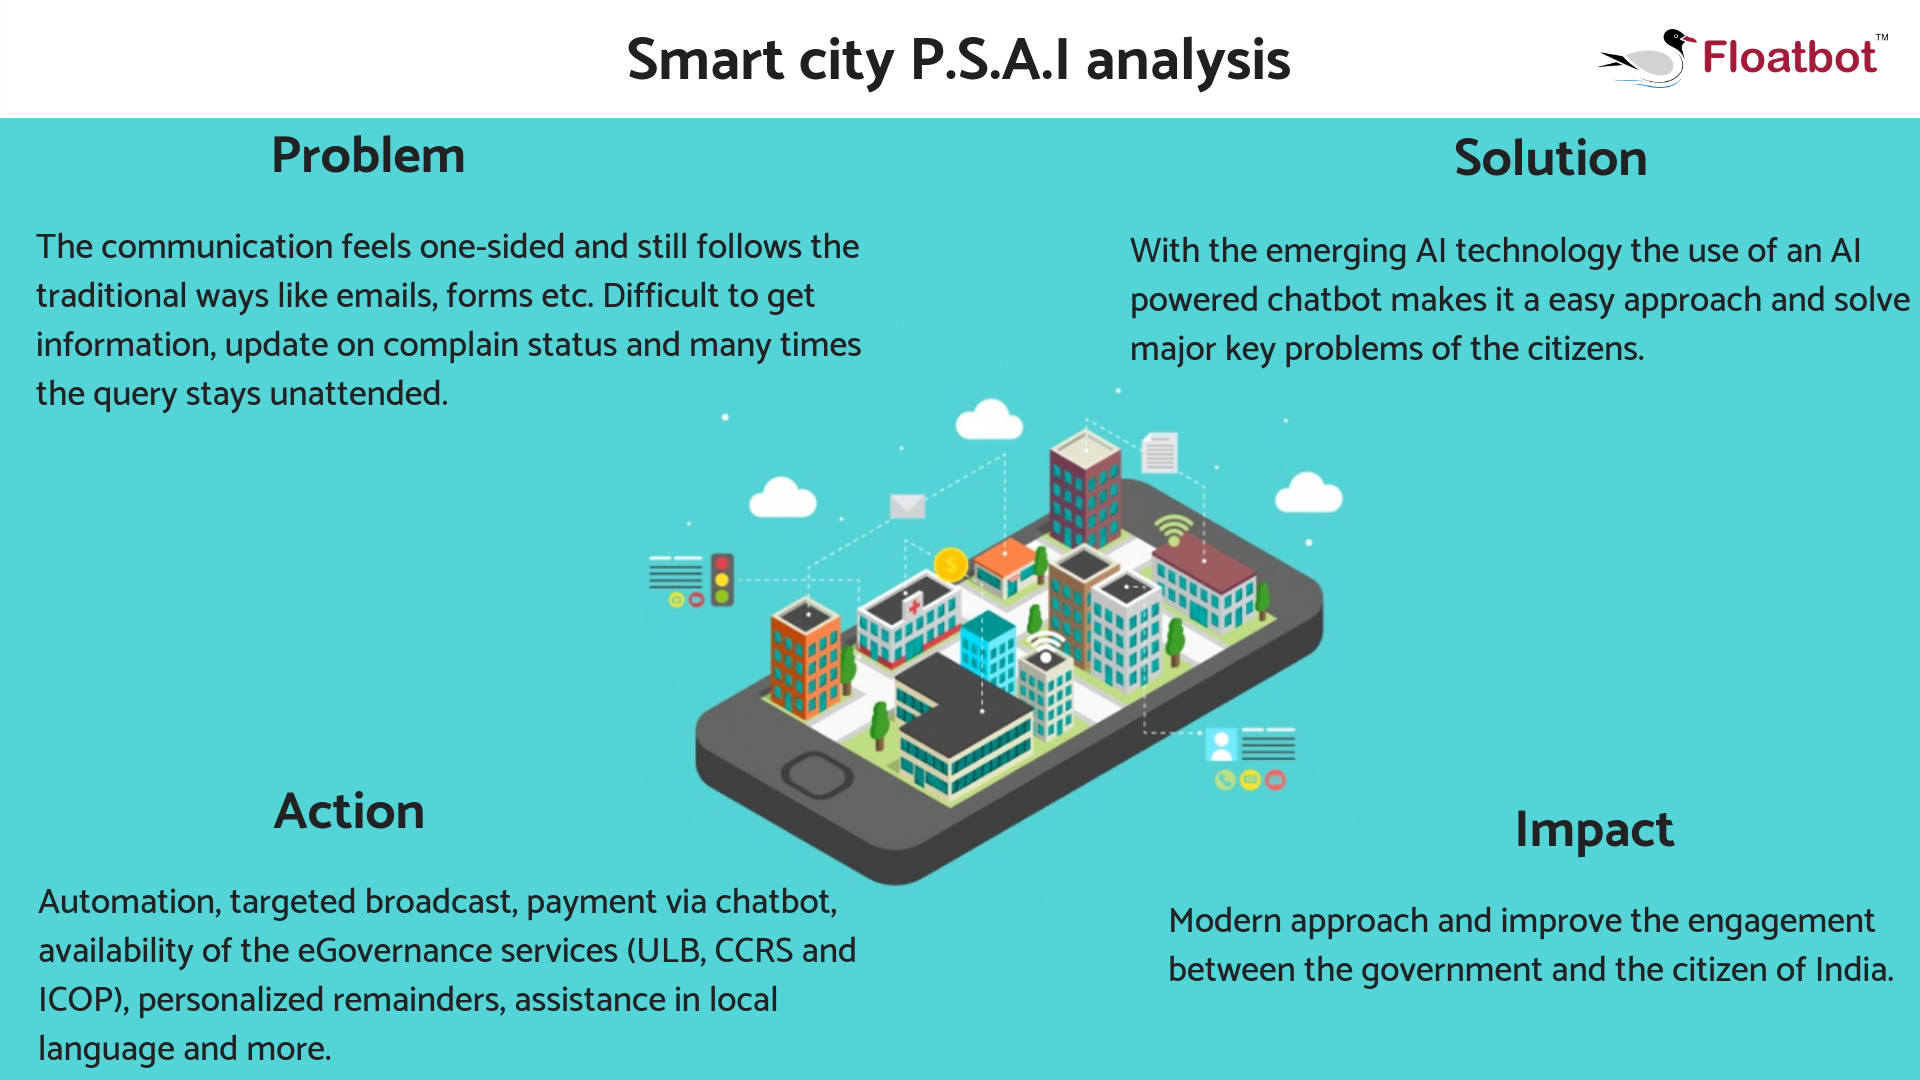 Here is how AI affects smart cities and makes them more smarter